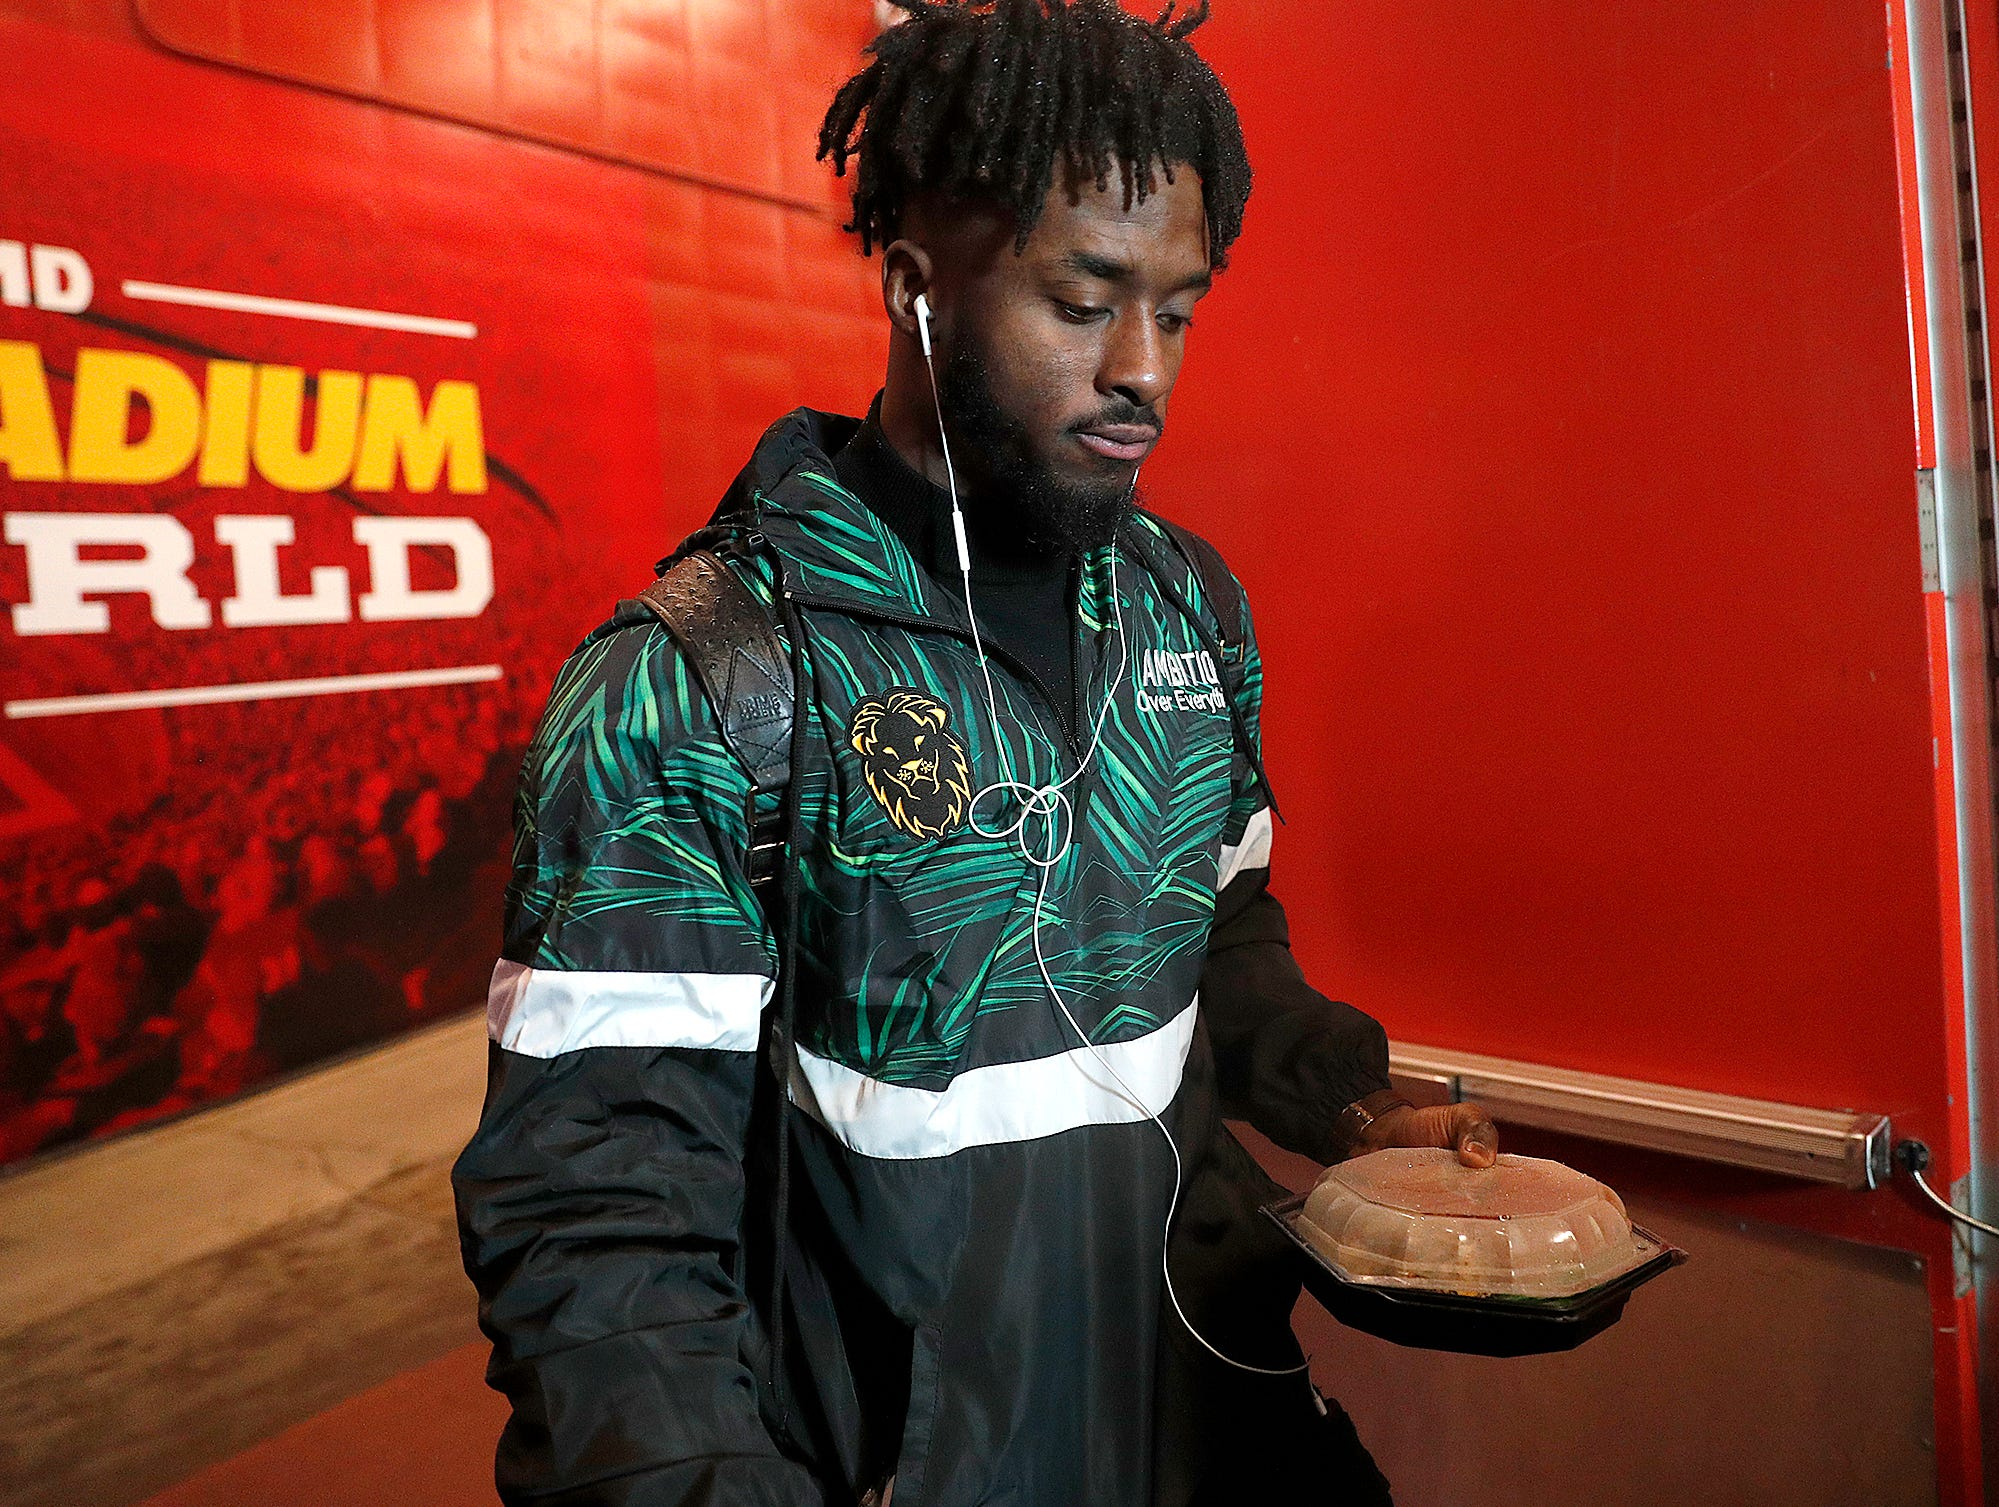 Indianapolis Colts defensive end Kemoko Turay (57) and the Indianapolis Colts arrive for their game against the Kansas City Chiefs at Arrowhead Stadium in Kansas City, MO., on Saturday, Jan. 12, 2019.